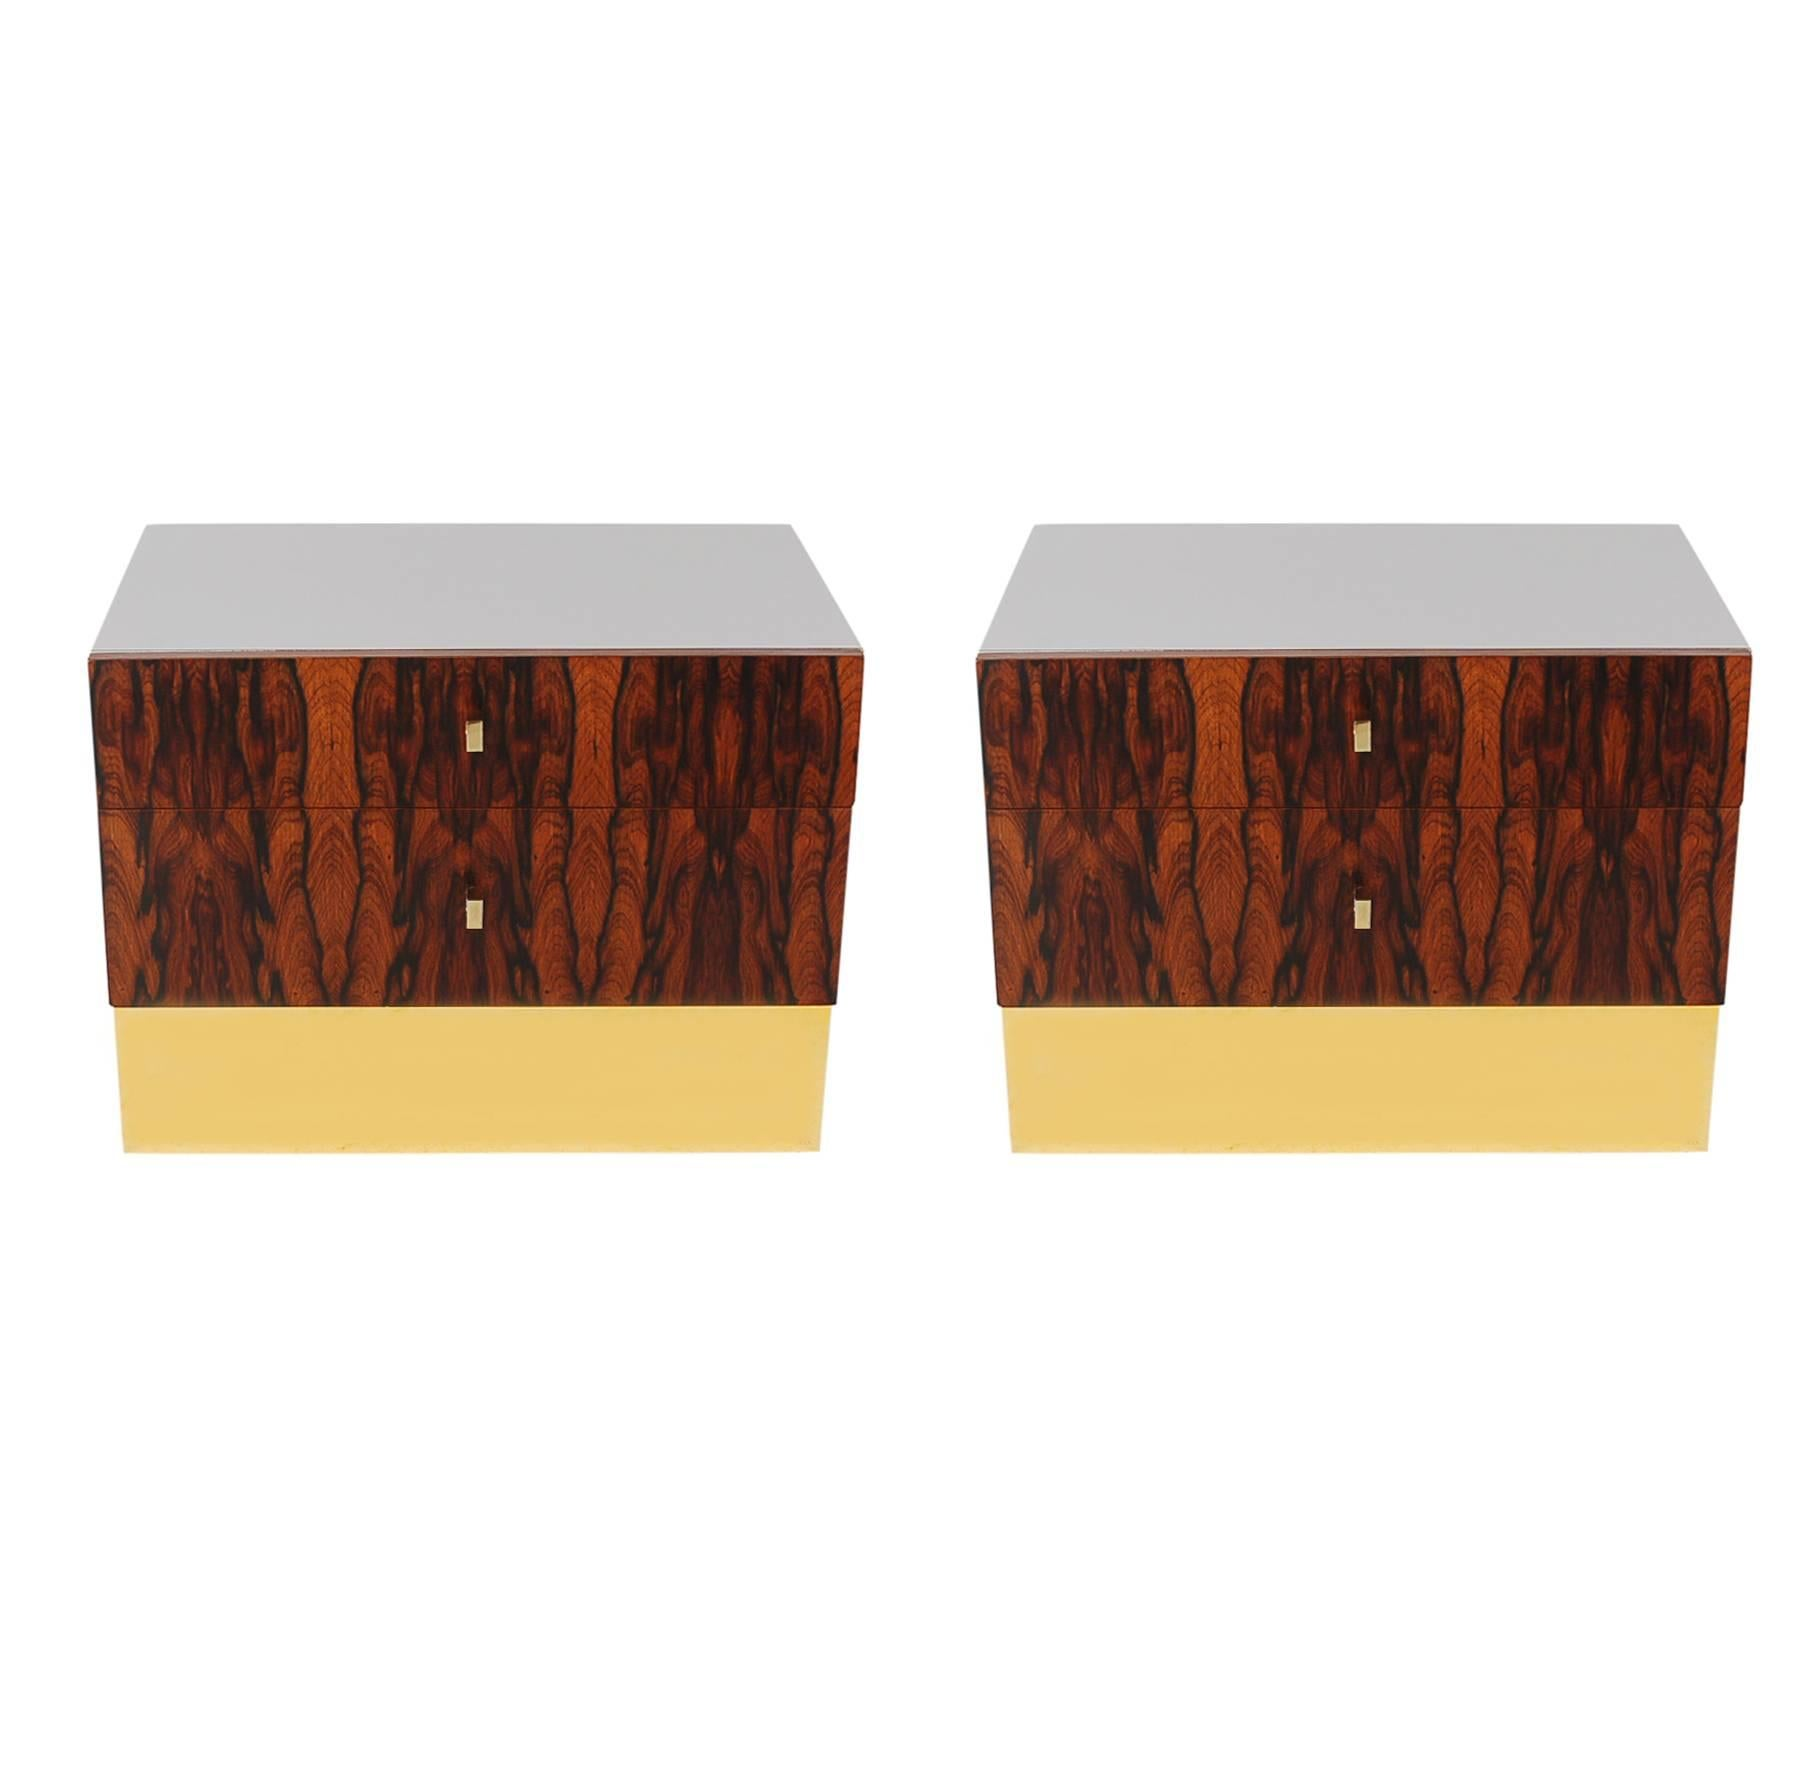 Pair of Mid-Century Modern Rosewood Brass Nightstands or End Tables by Rougier